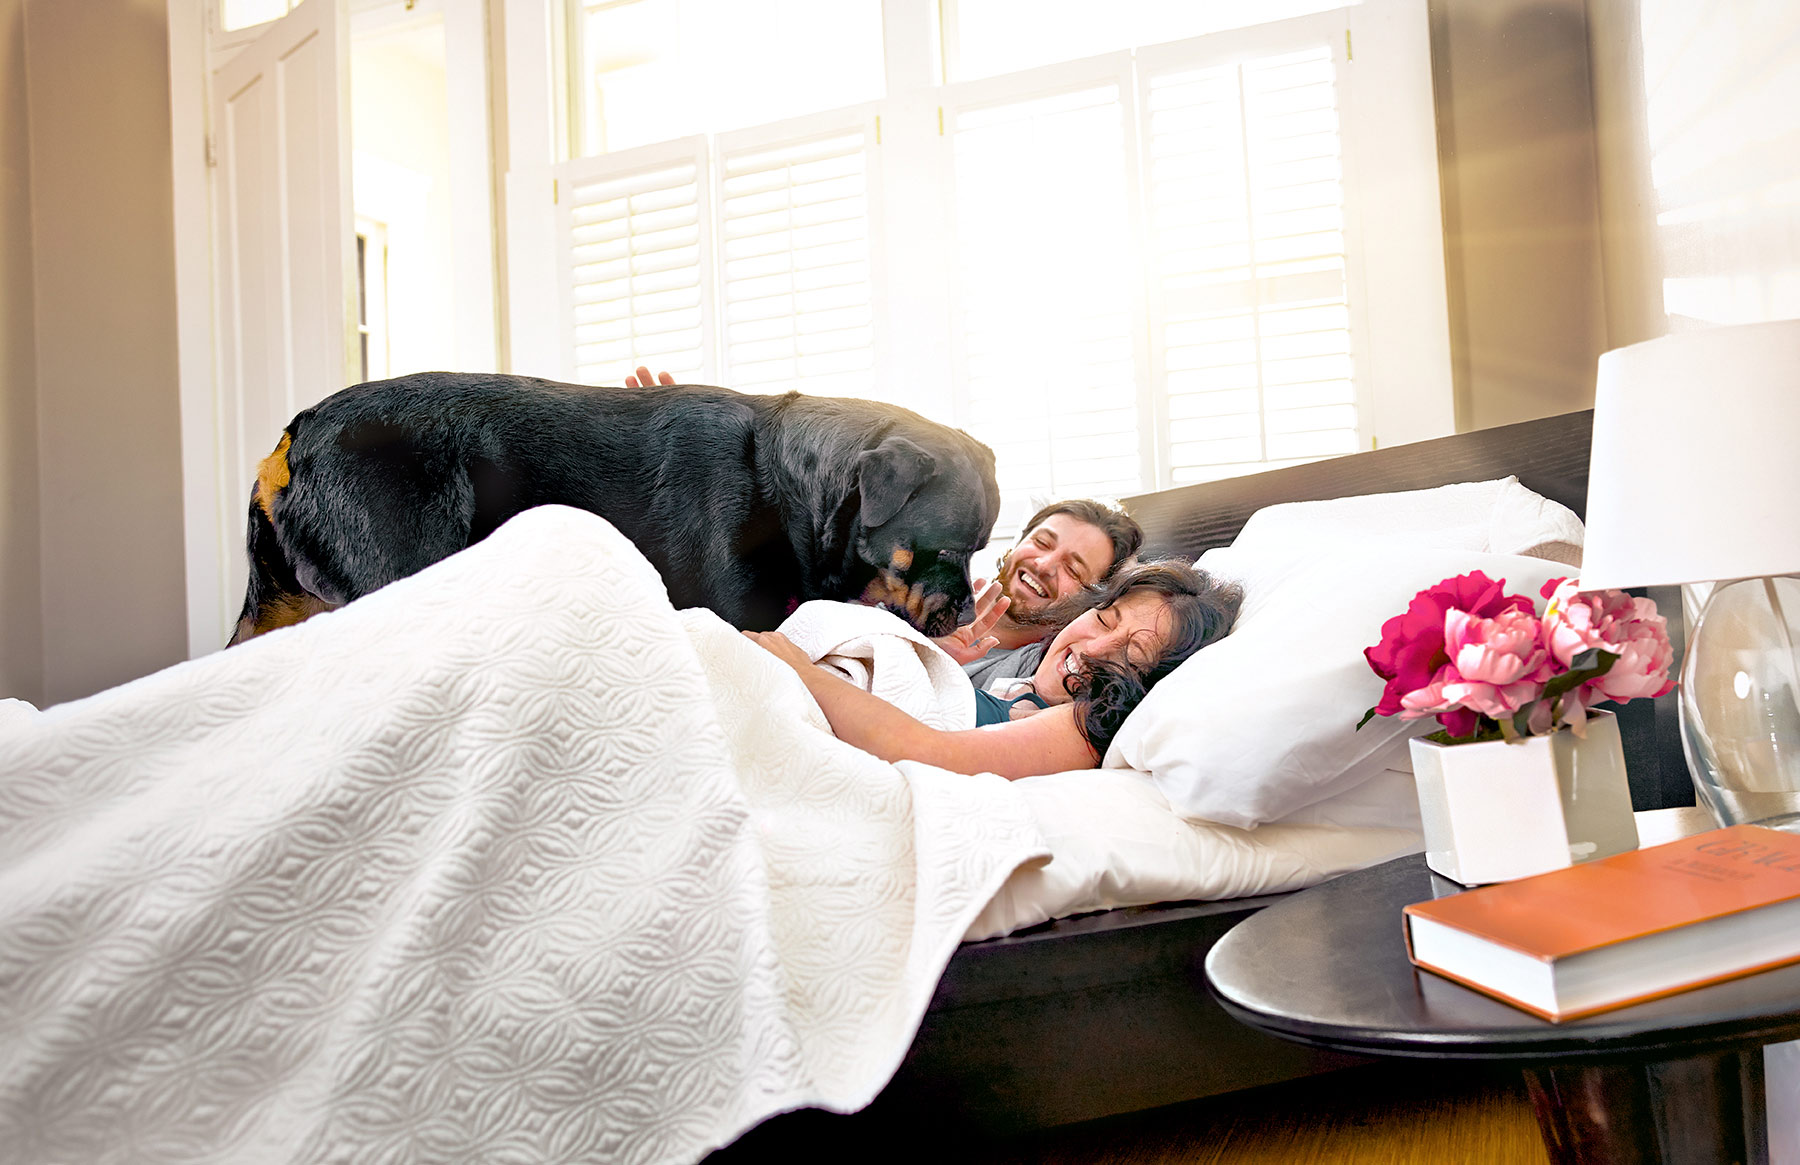 A-young-couple-in-bed-with-a-large-black-dog